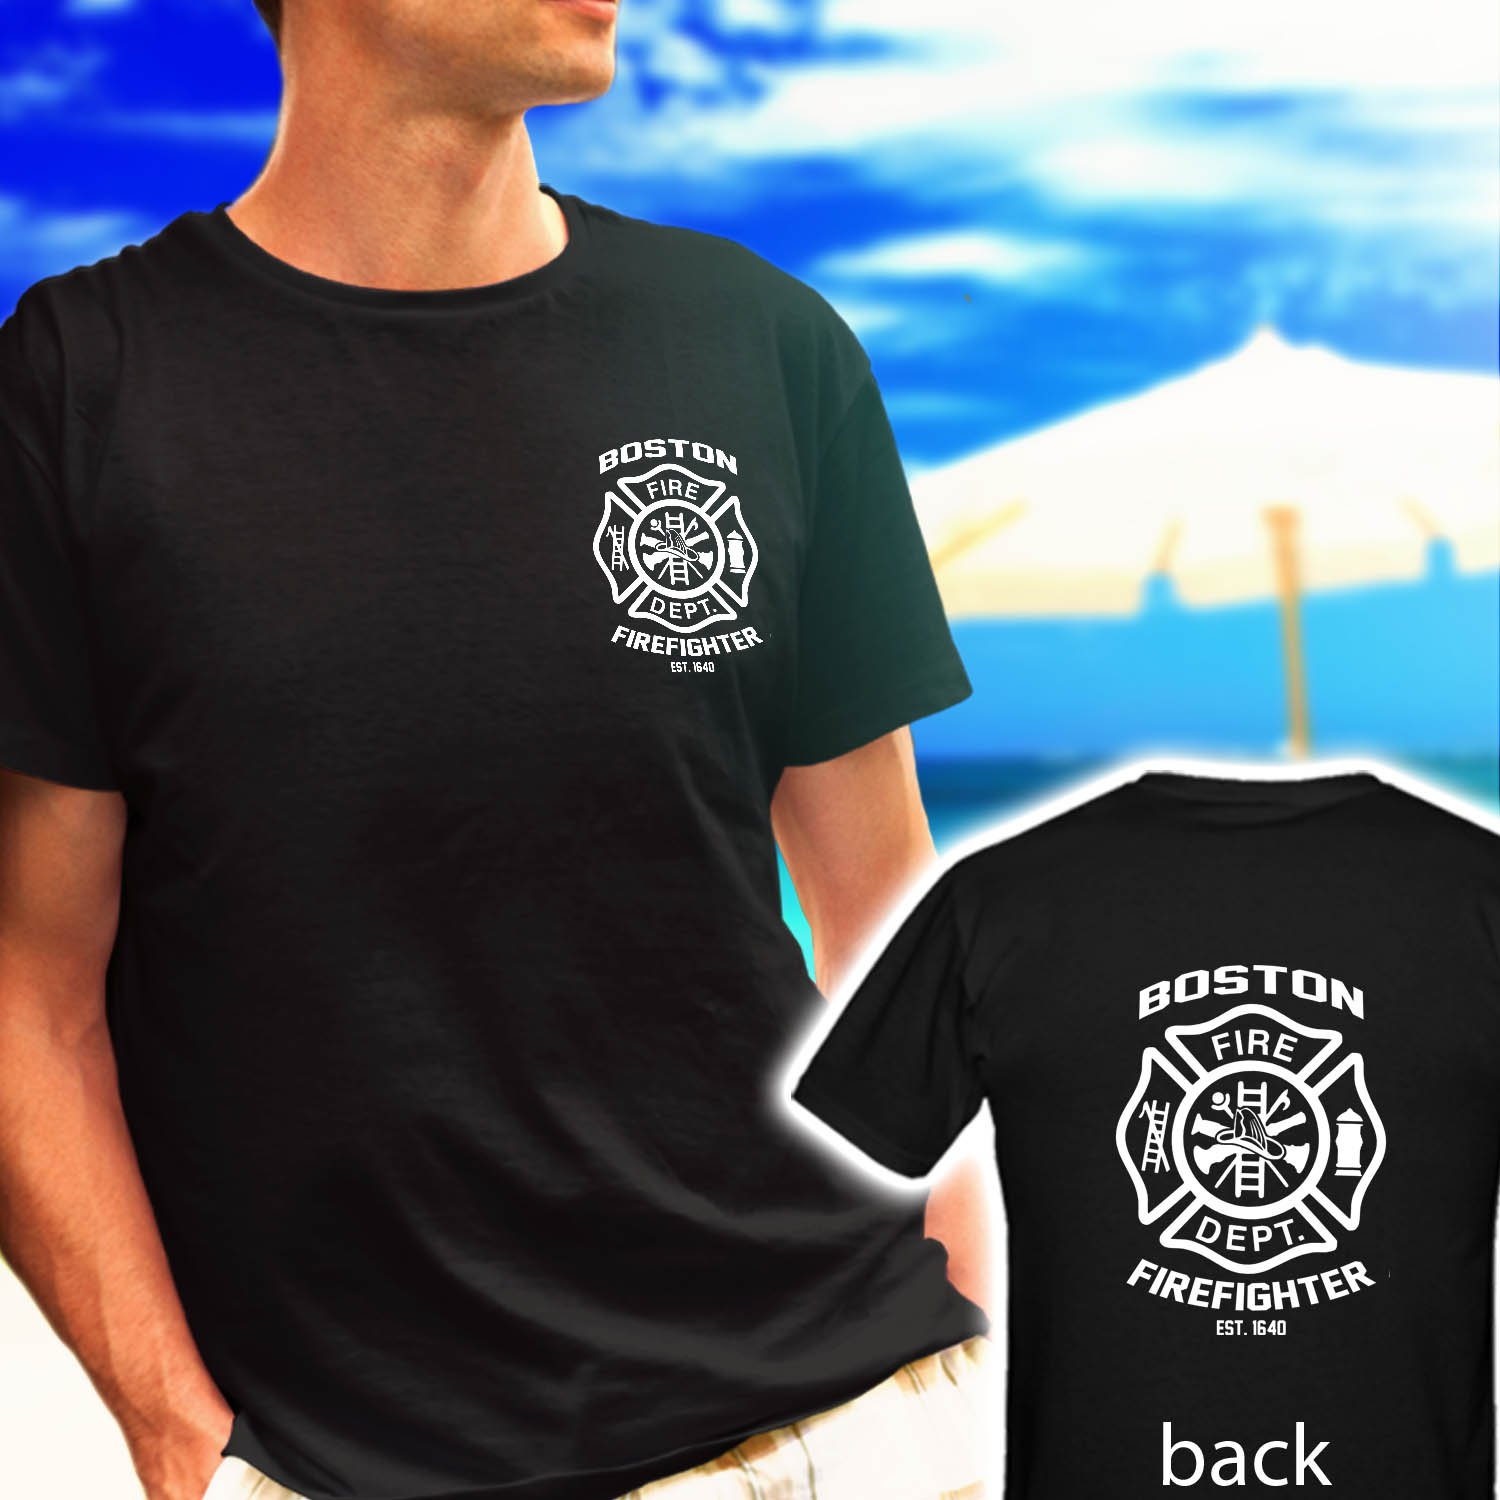 boston firefighter fire department est 1640 black t-shirt tshirt shirts tee SIZE S